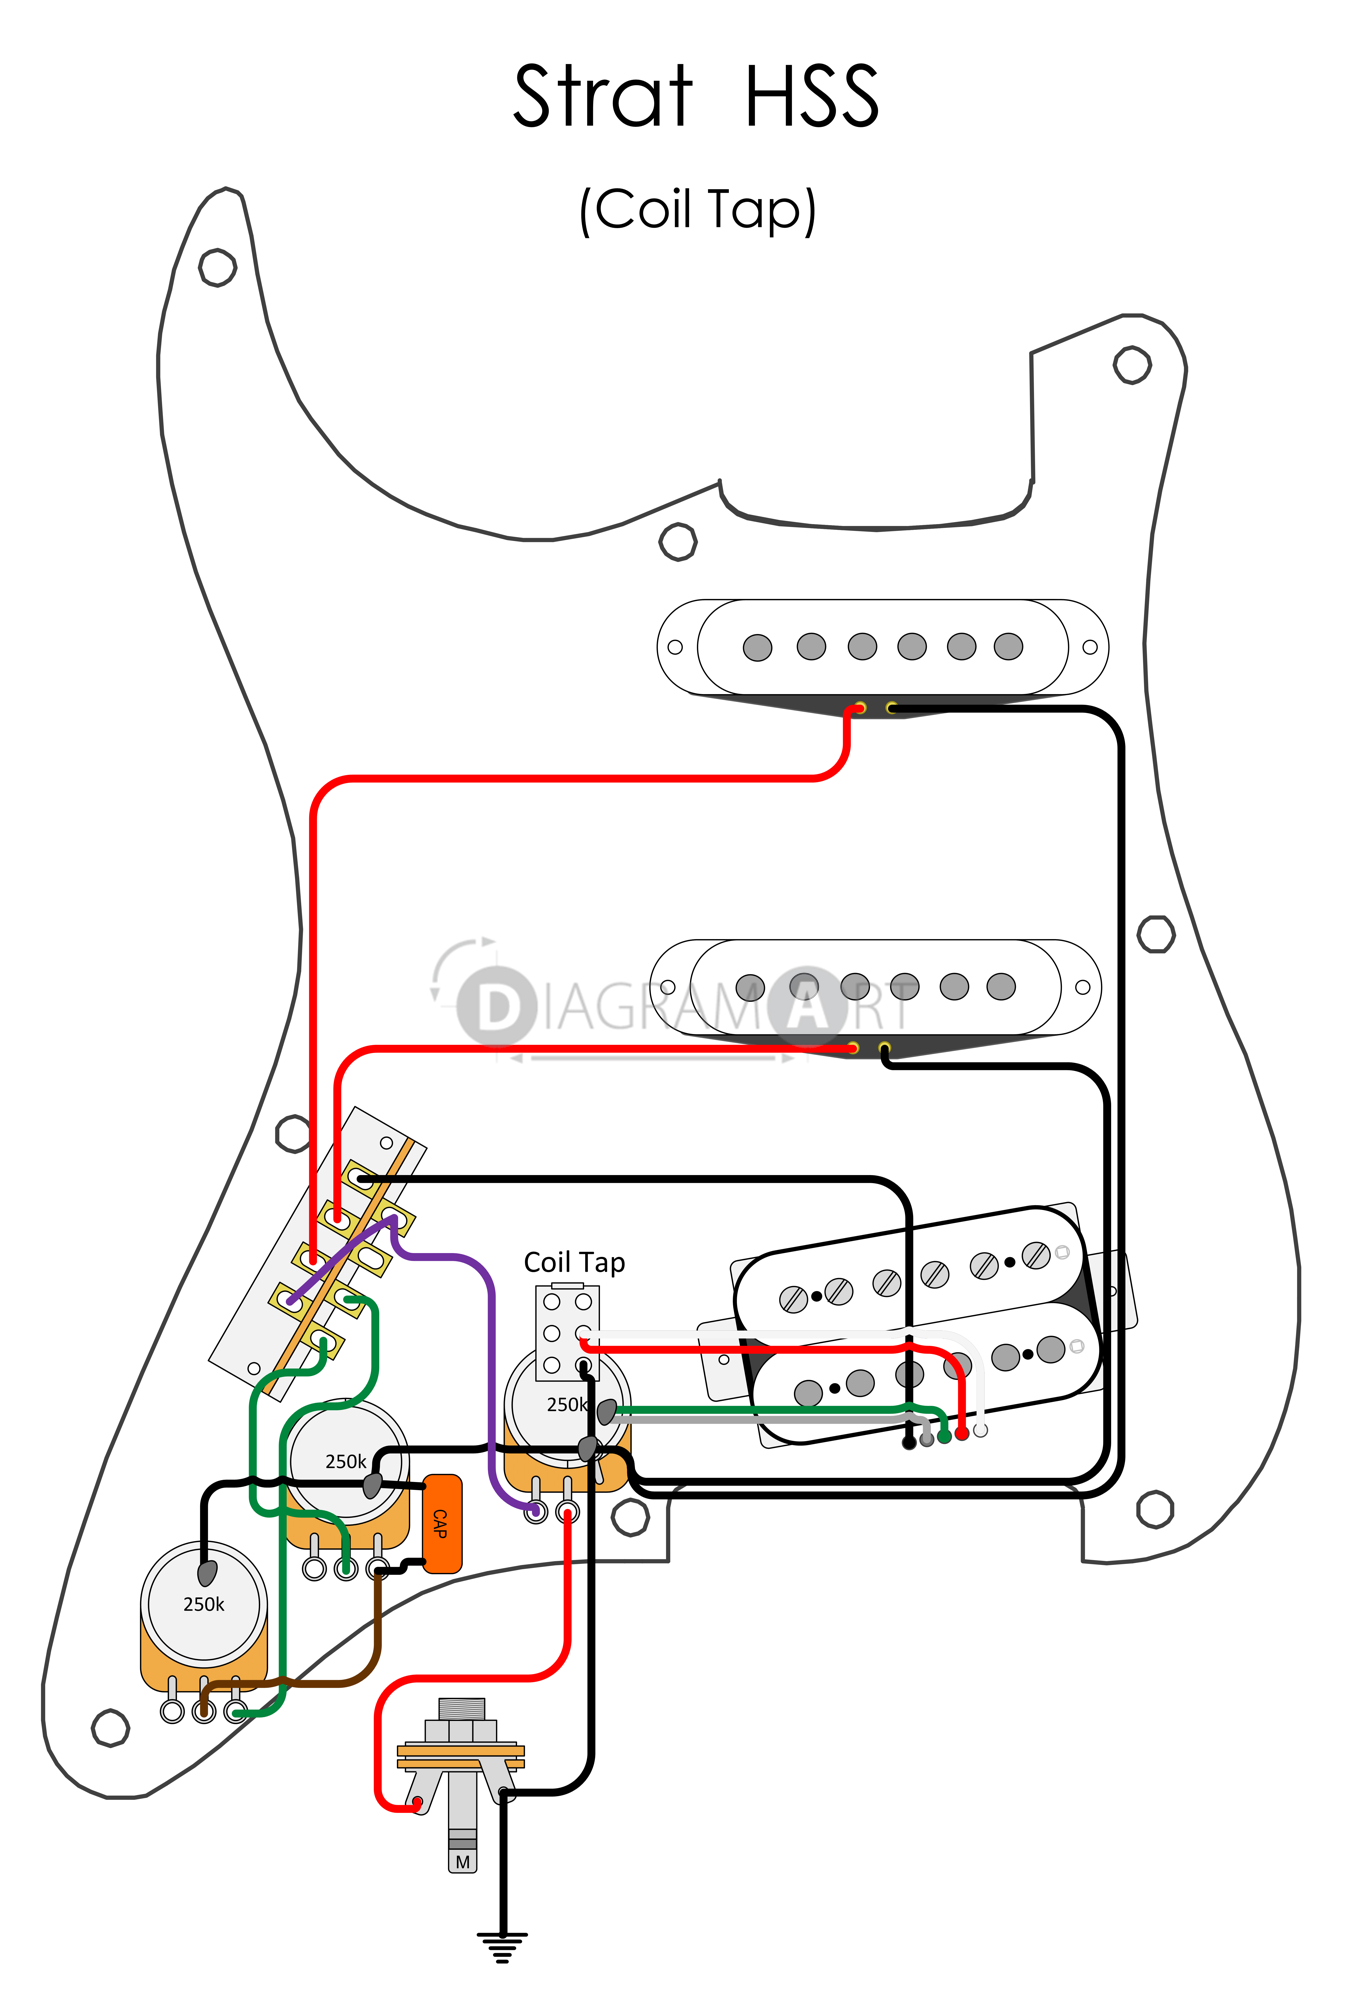 Jackson Hss Wiring Diagram - Wiring Diagram 500 on